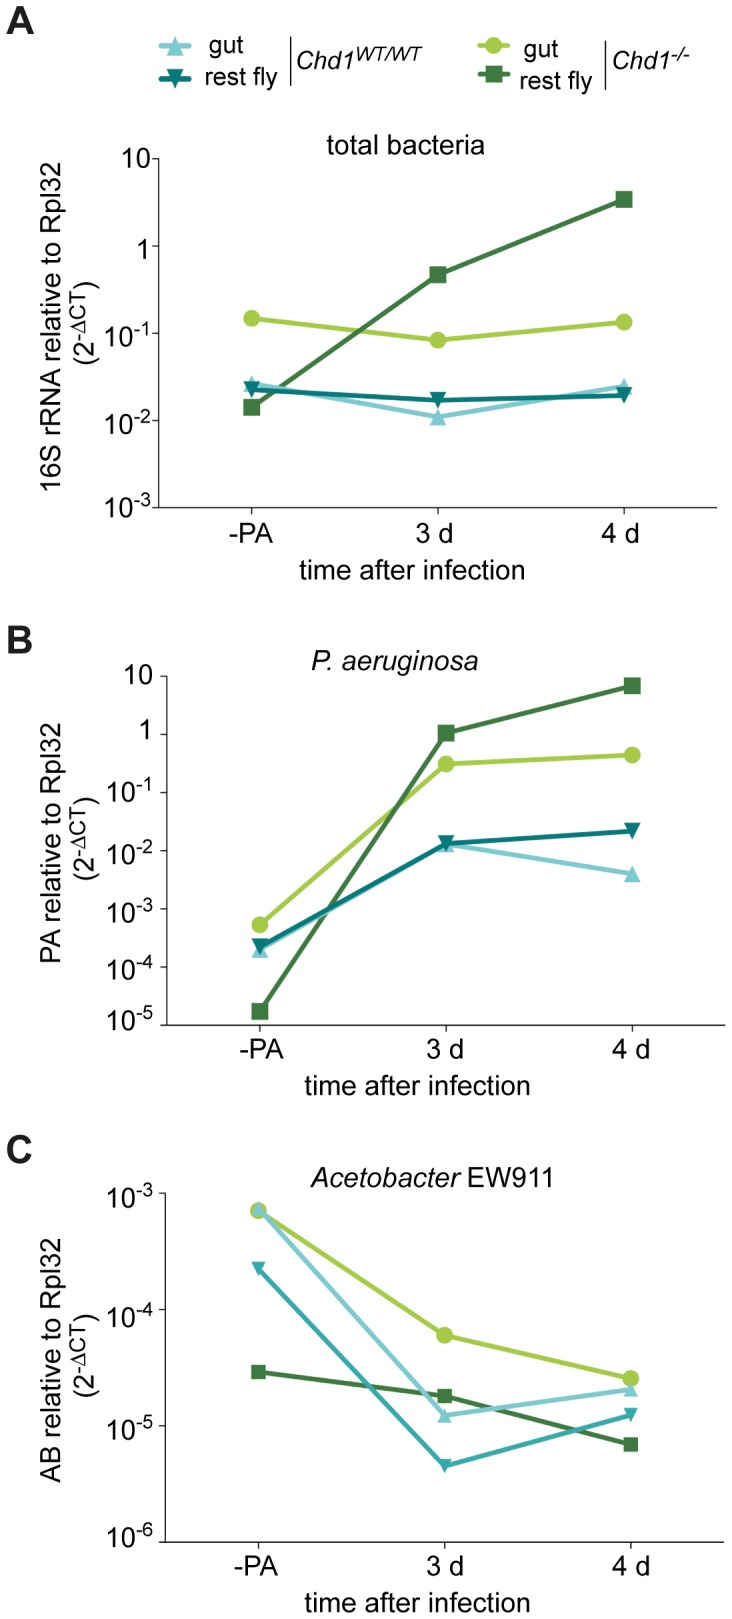 Bacterial load is elevated in Chd1 -mutant flies. (A) Bacterial load was analyzed in isolated guts and in whole flies from which intestines had been removed. qPCR was performed with primers targeting 16S rDNA in the absence of infection (−PA) as well as 3 days and 4 days after oral infection with P. aeruginosa. (B) 251659264 P. aeruginosa titers are strongly increased in Chd1 −/− flies after infection. qPCR as in (A) with primers specific for P. aeruginosa . (C) Analysis of the gut-specific bacterium Acetobacter EW911. qPCR as in (A) with primers specific for Acetobacter EW911 . Relative differences of bacterial genes and the fly Rpl32 gene are expressed as 2 −ΔCT values. Values represent mean +/− SD of three independent experiments. Note that SD values are too small to show in the graph.